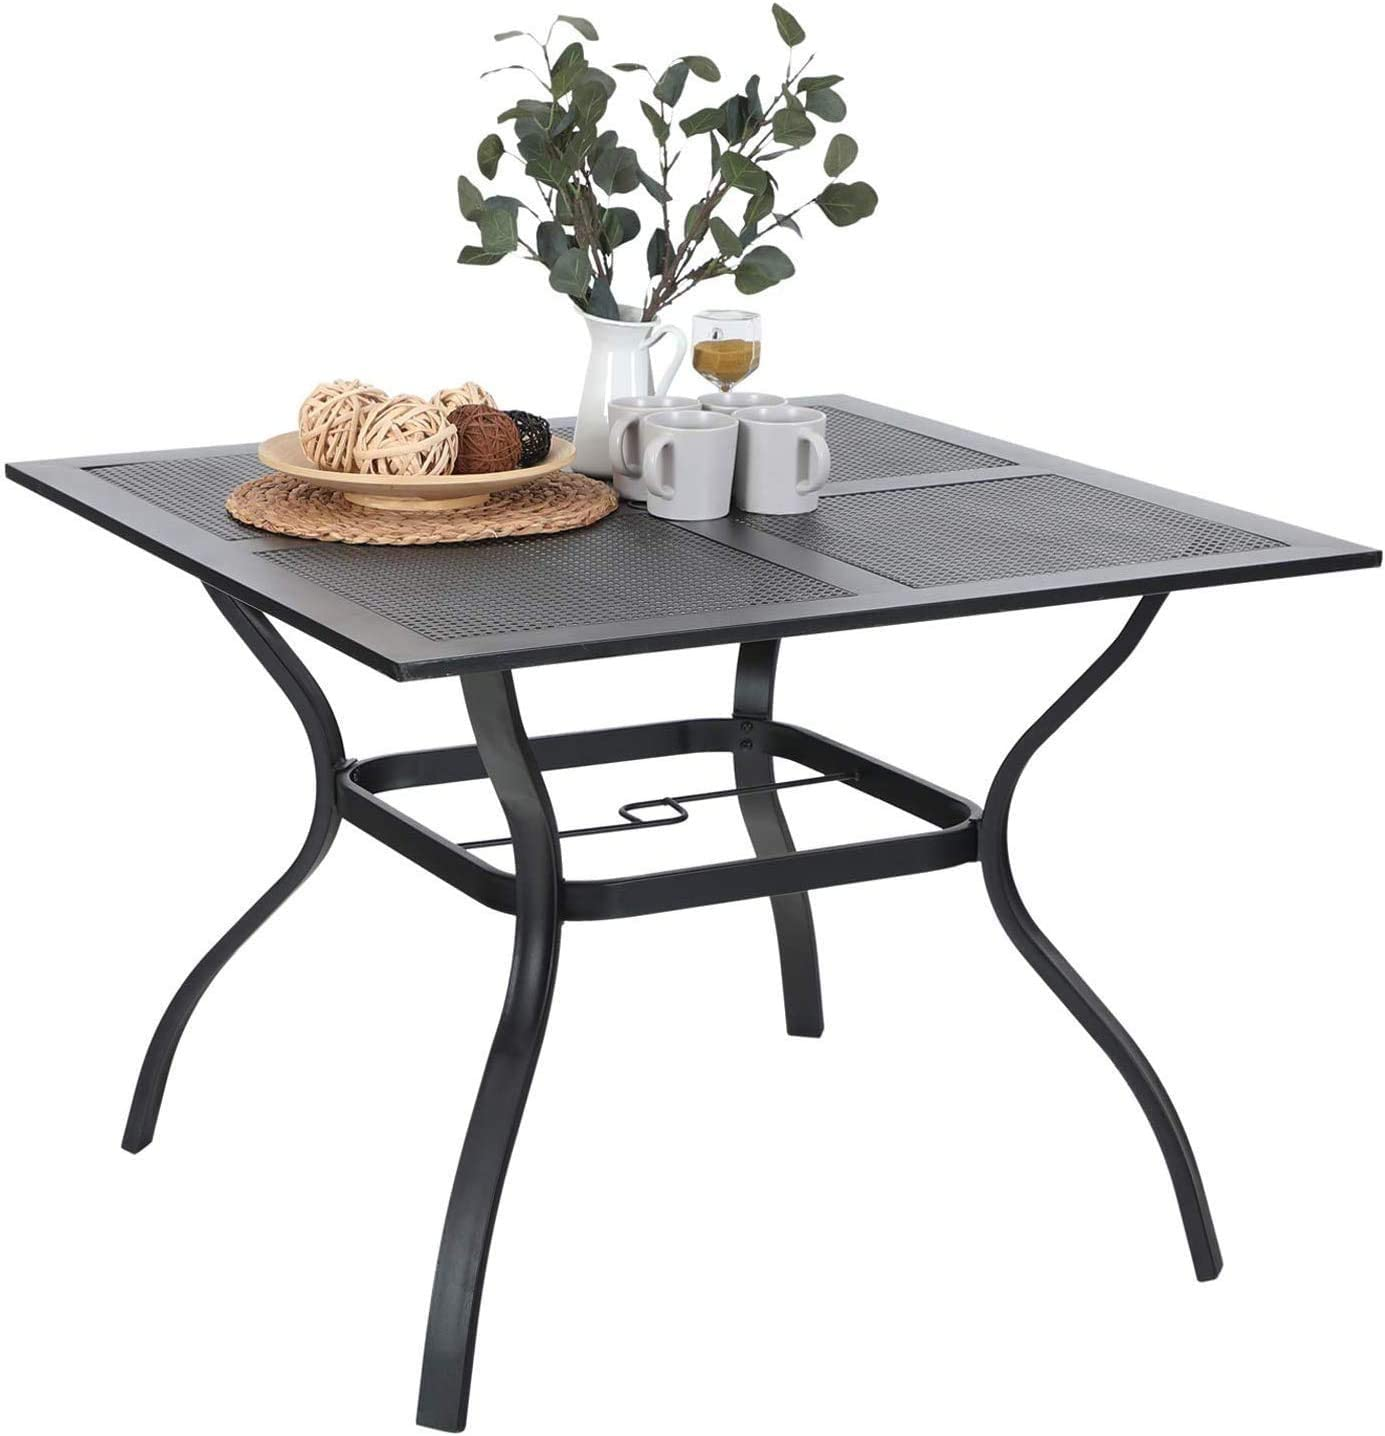 Sophia William Metal Dining Table Patio Square Table Outdoor Umbrella Table Mesh Metal Top for Water Drip Through for Garden Lawn 37 x 37 Weather Resistant Table Black